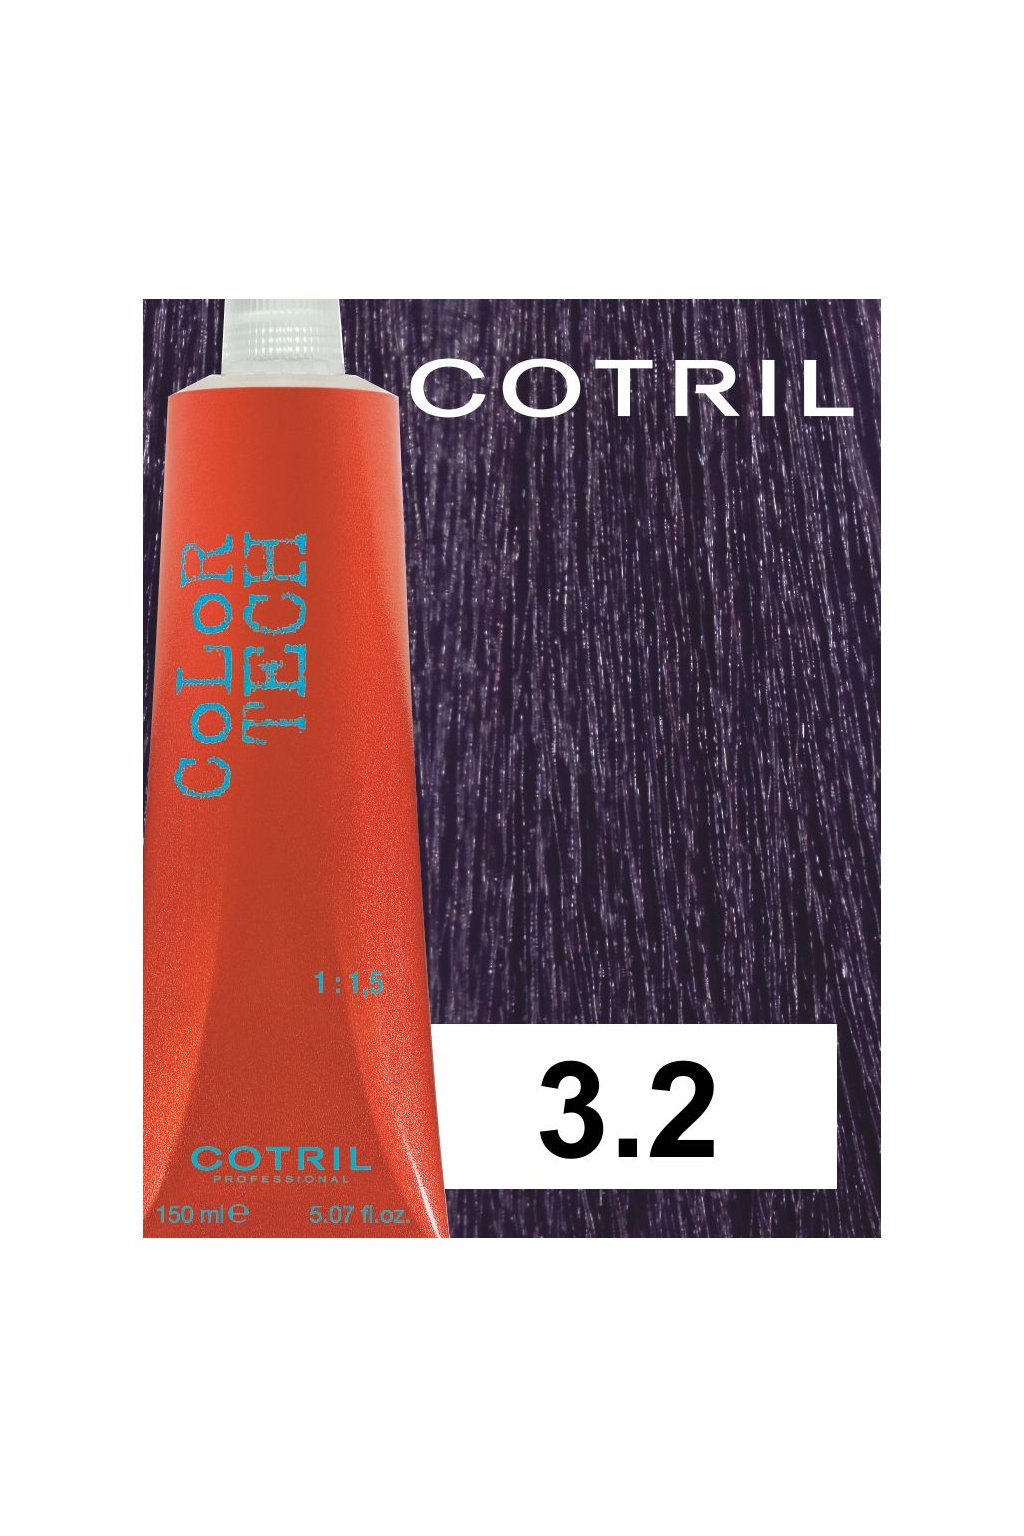 3 2 ct cotril